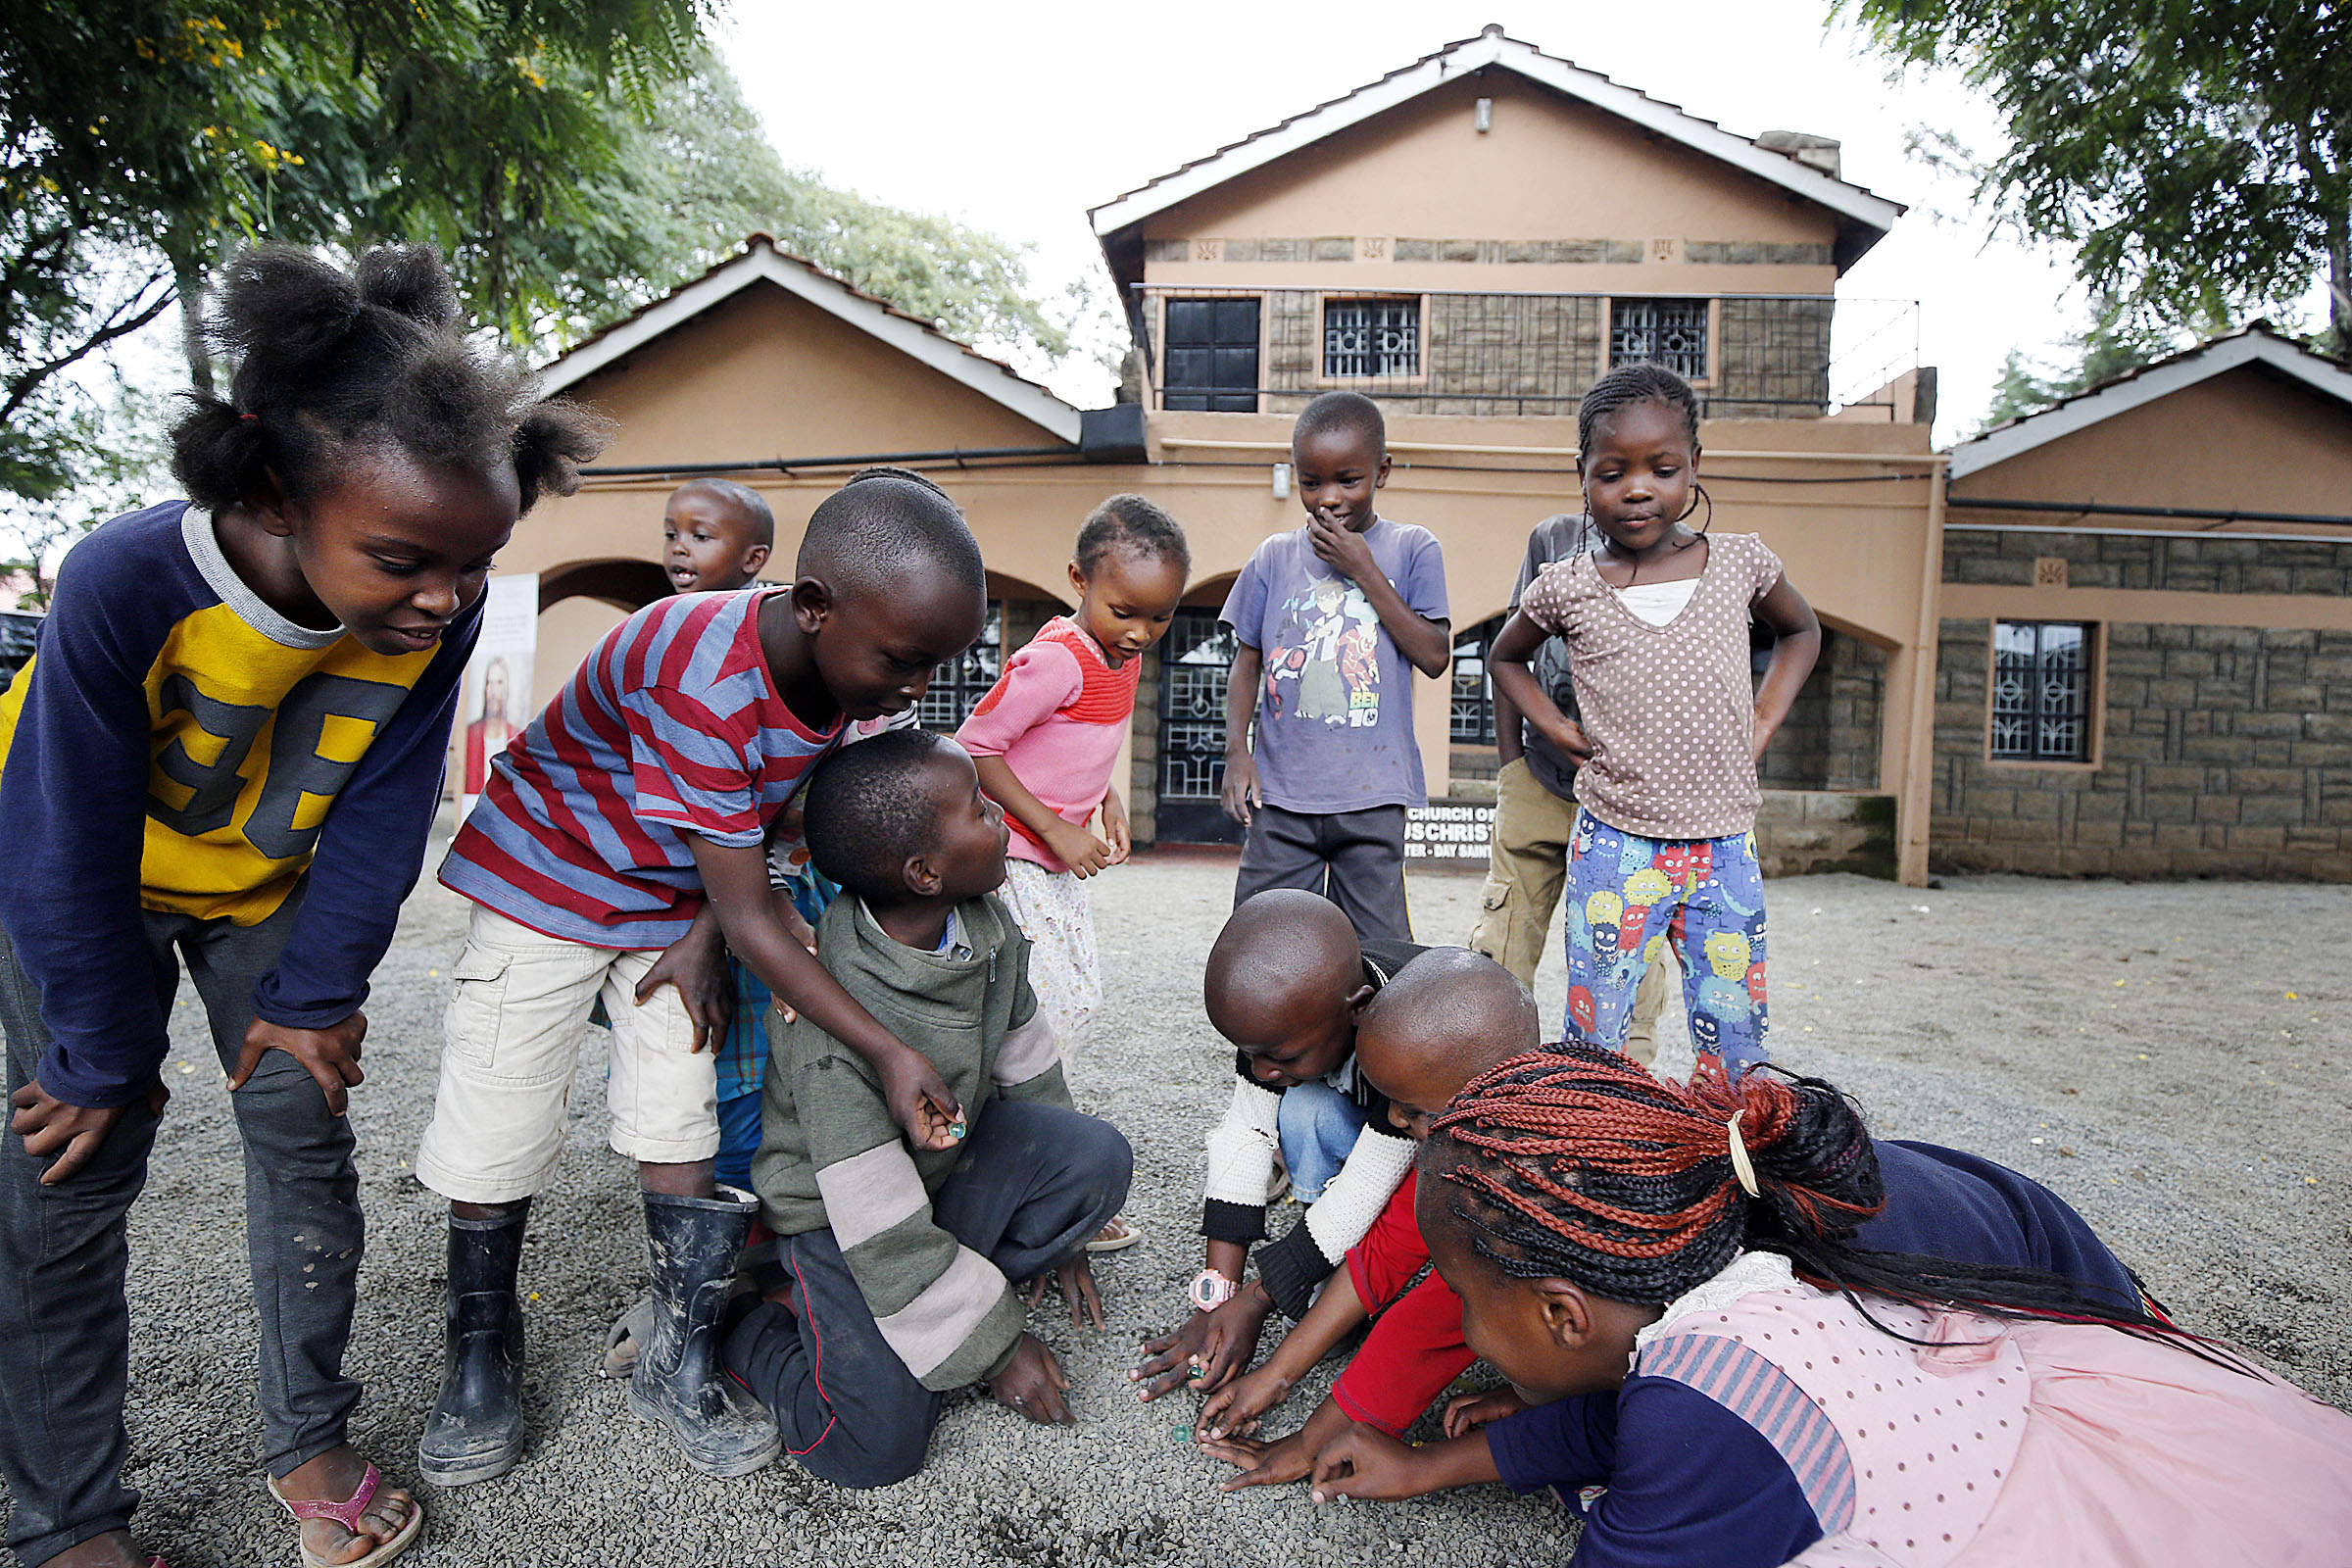 Kids play marbles at the Rongai meetinghouse on the outskirts of Nairobi, Kenya, on Saturday, April 14, 2018.